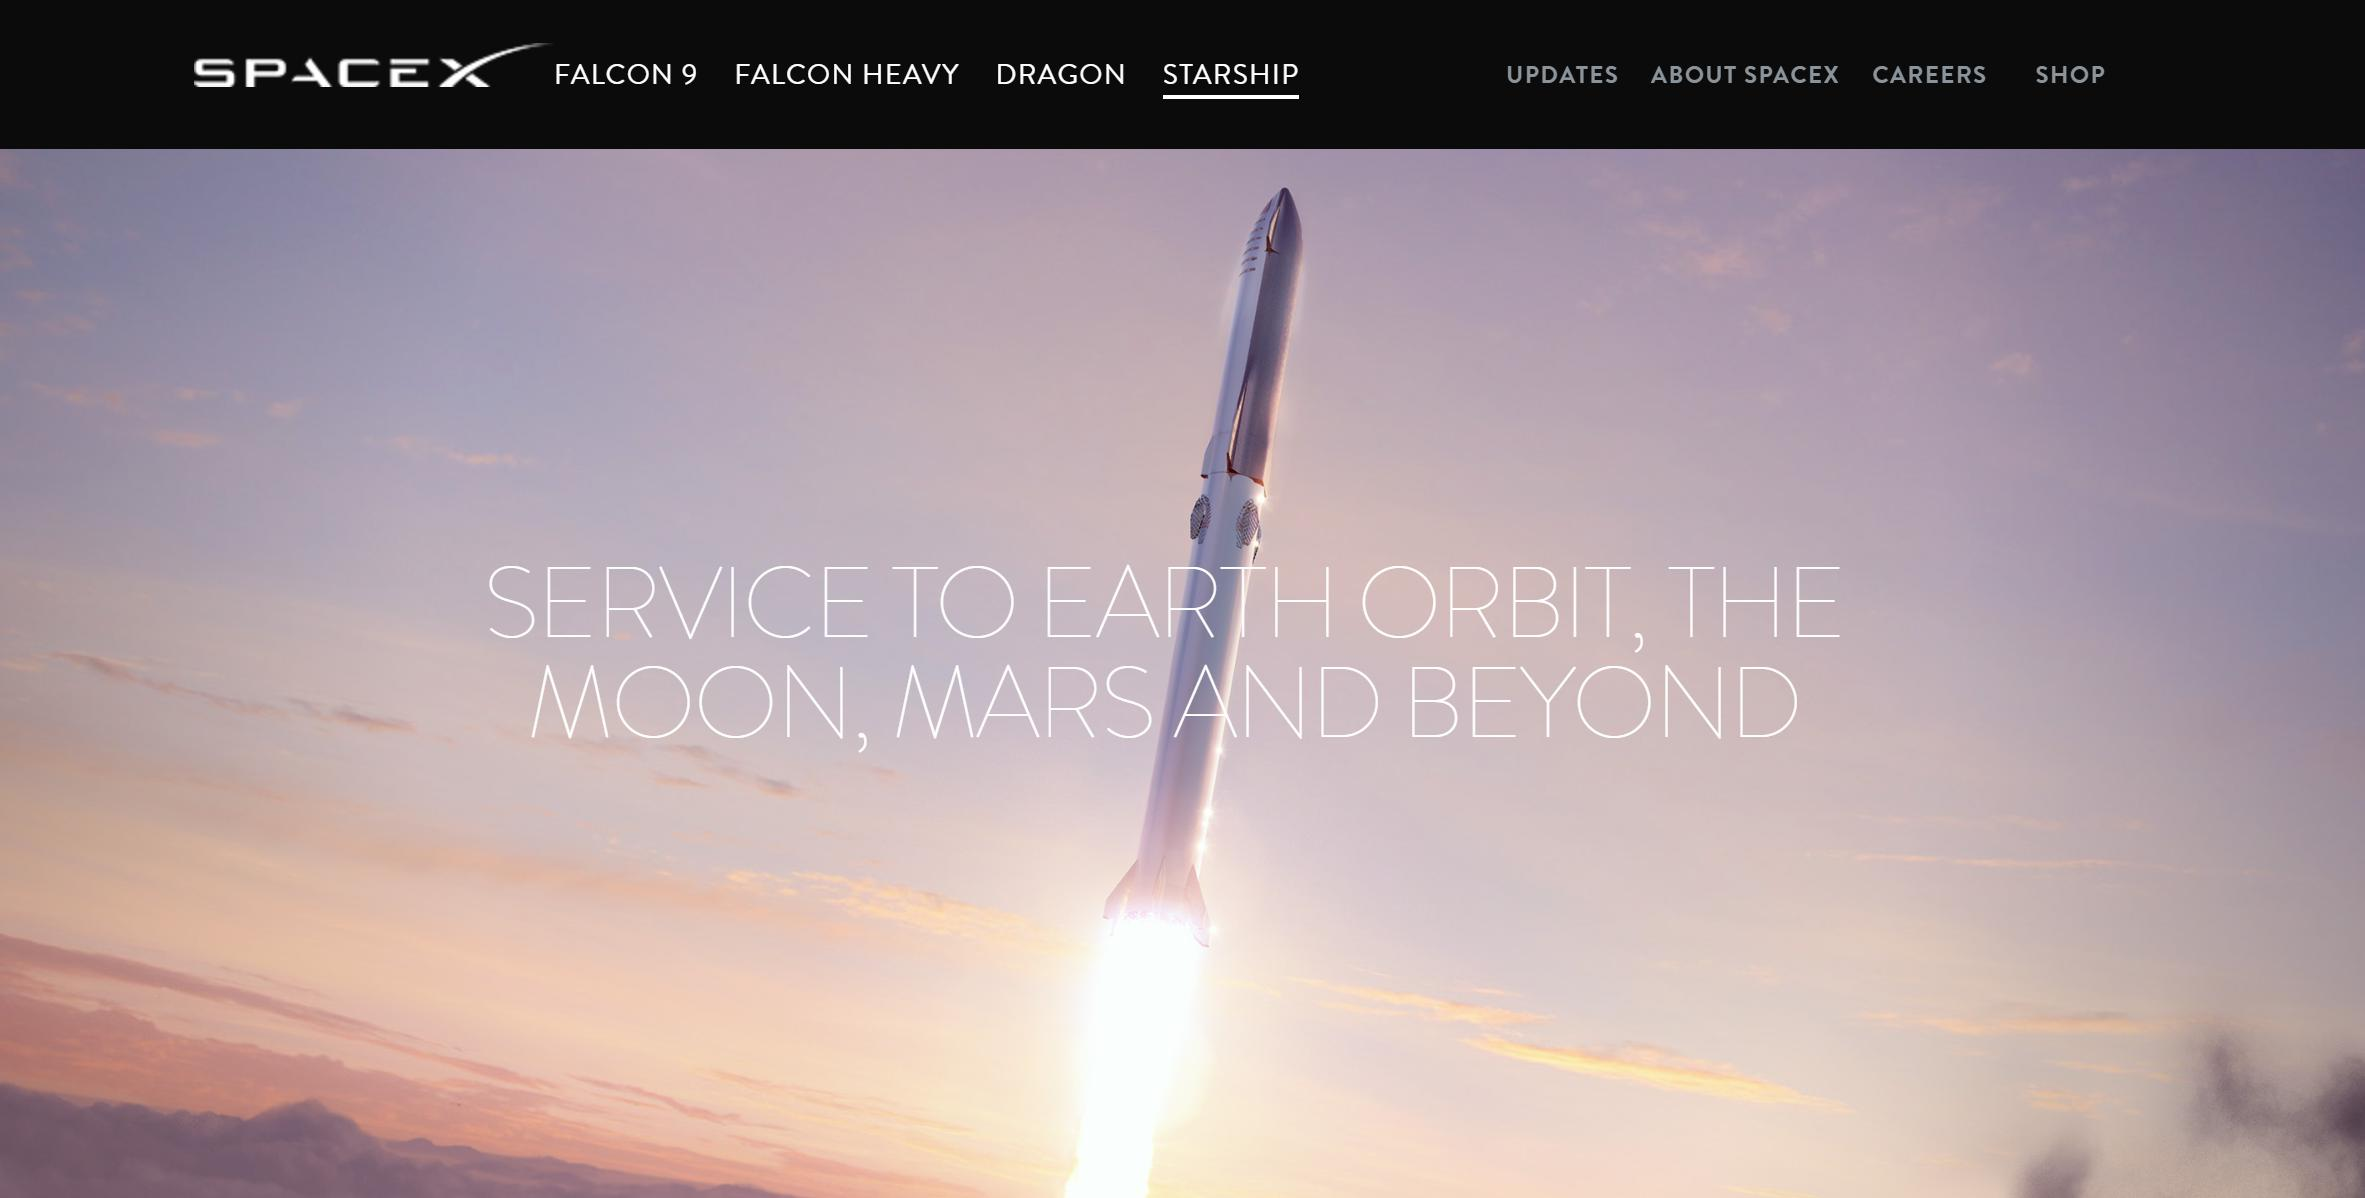 Starship website 093019 (SpaceX) 1